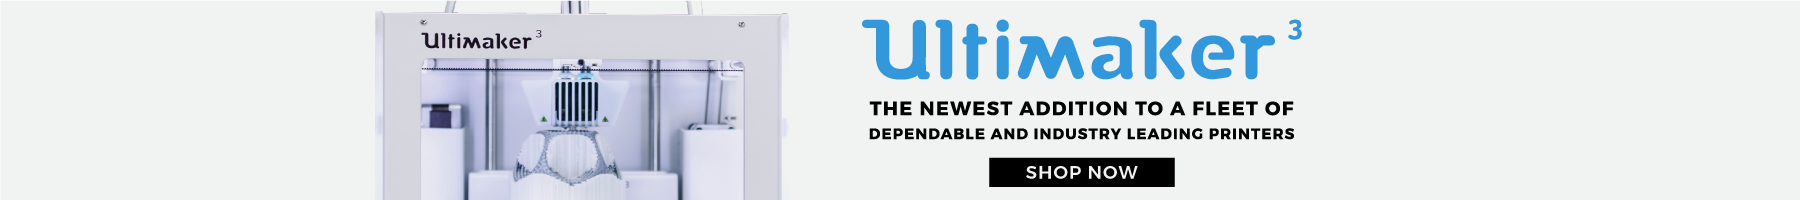 Introducing the Ultimaker 3